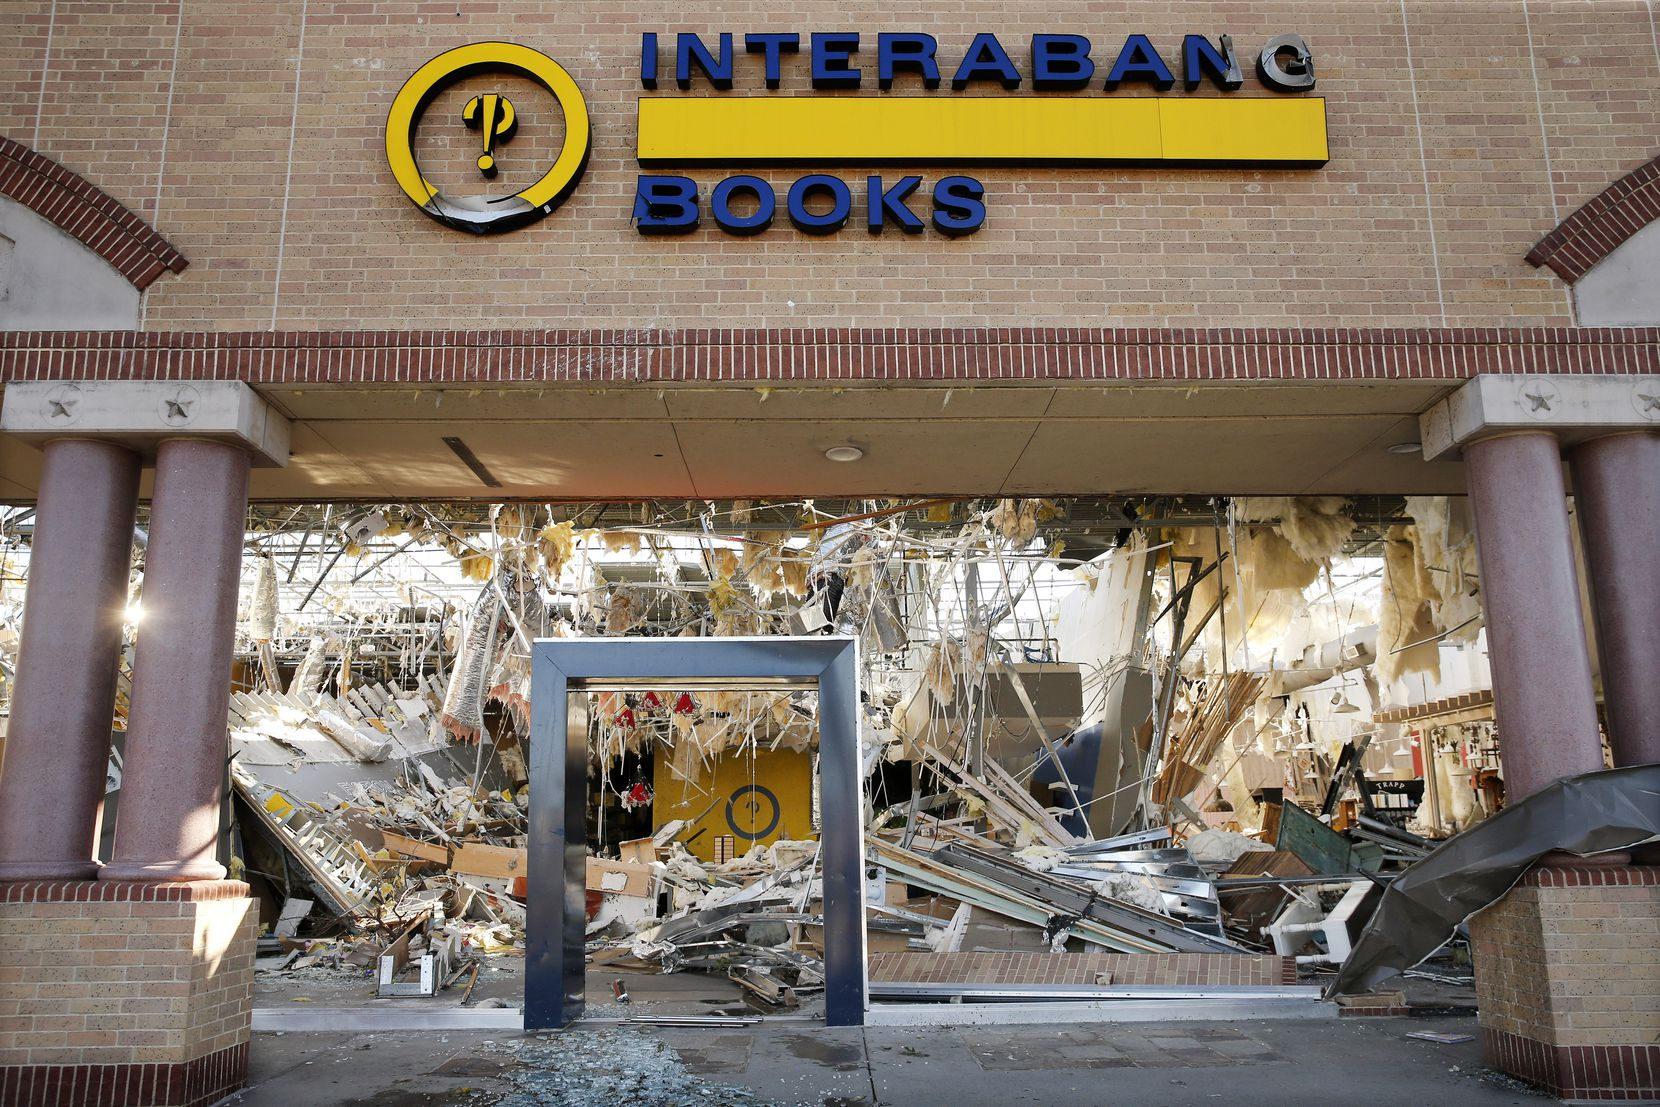 The interior of the Interabang Books store was demolished by a tornado in the Preston Royal shopping center in Dallas, Monday, October 21, 2019. A tornado tore through the entire shopping center. (Tom Fox/The Dallas Morning News)